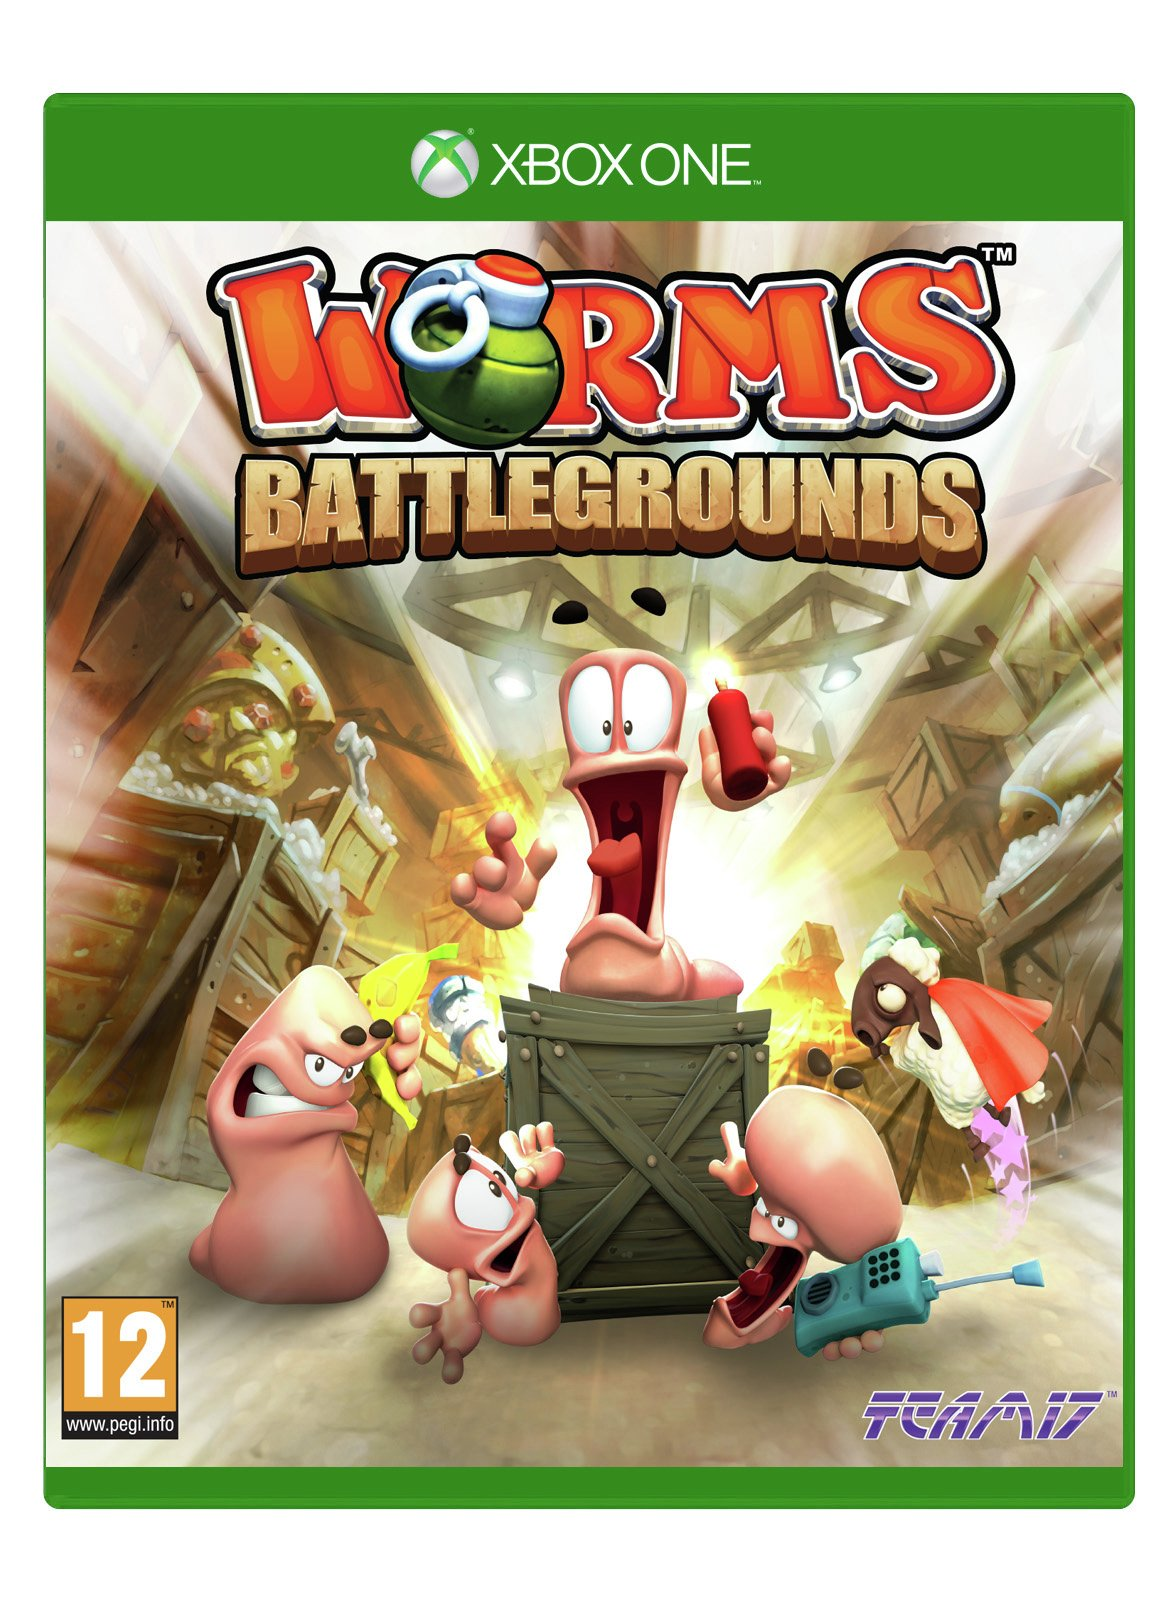 Worms Battlegrounds - Xbox - One Game.